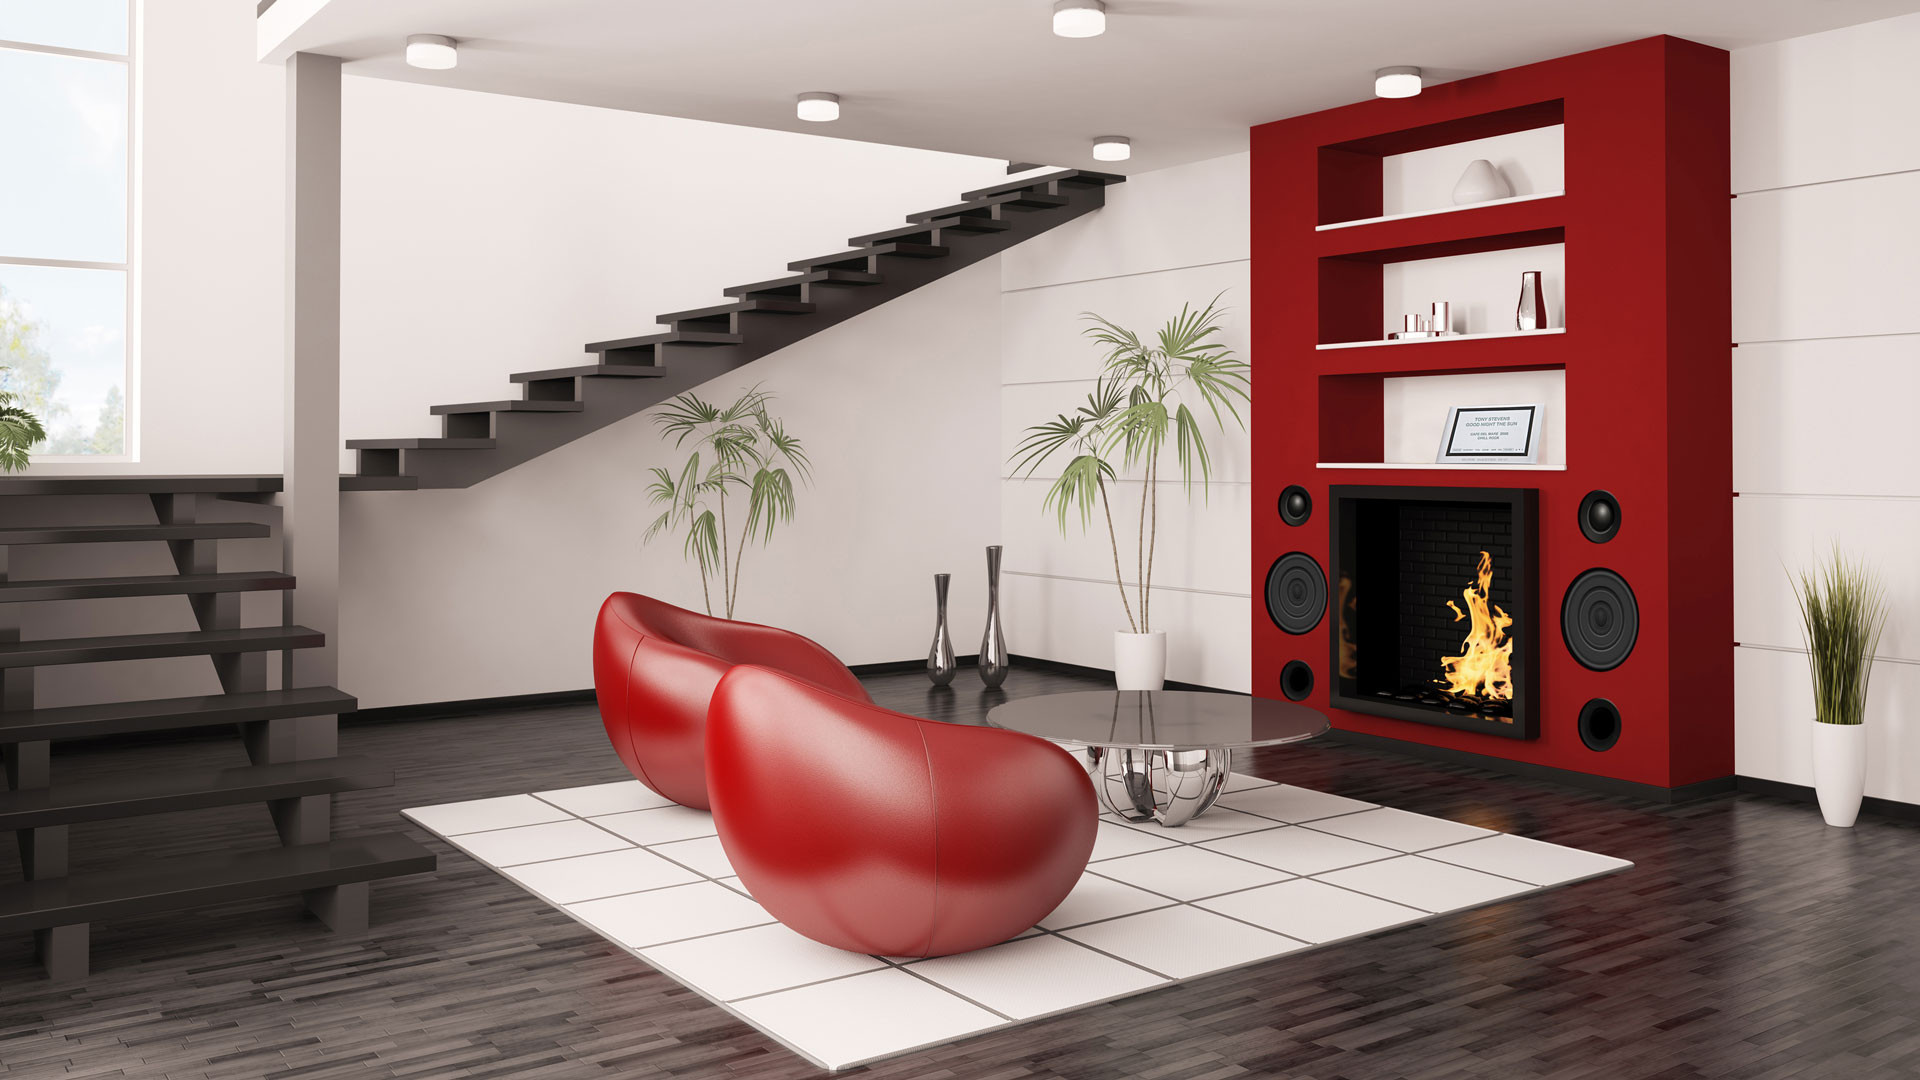 Z-Productions: Sound Design. Design concept for the perfect musical enjoyment with room-designing fireplace furniture.